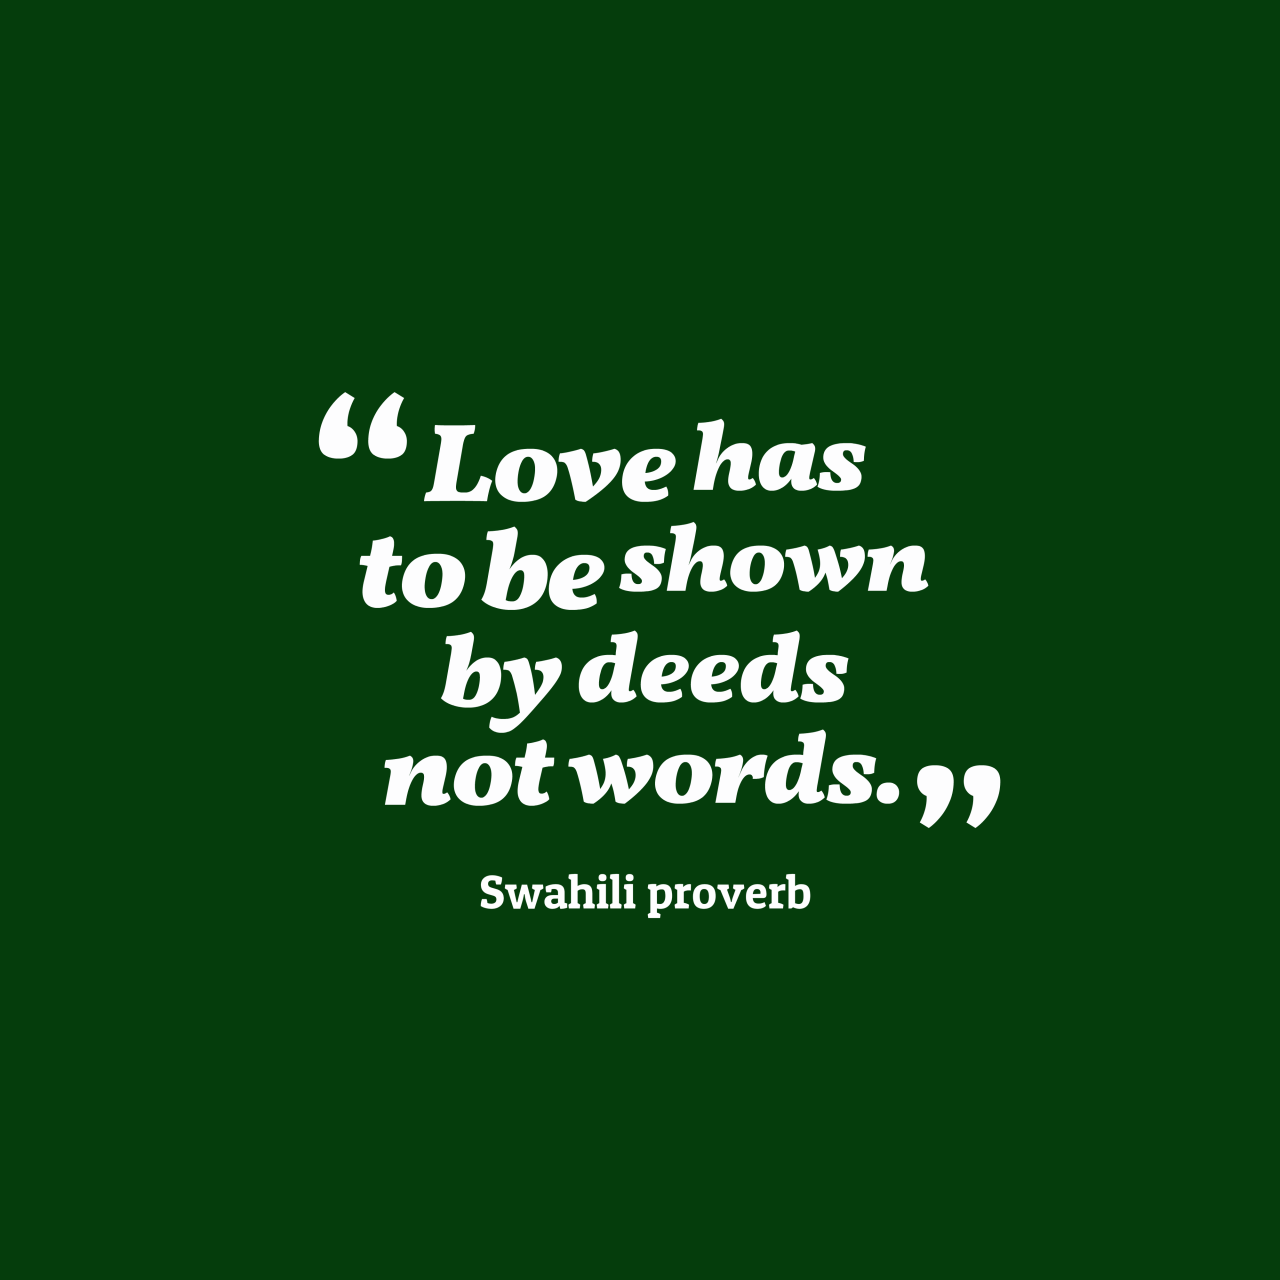 Swahili Proverb About Love